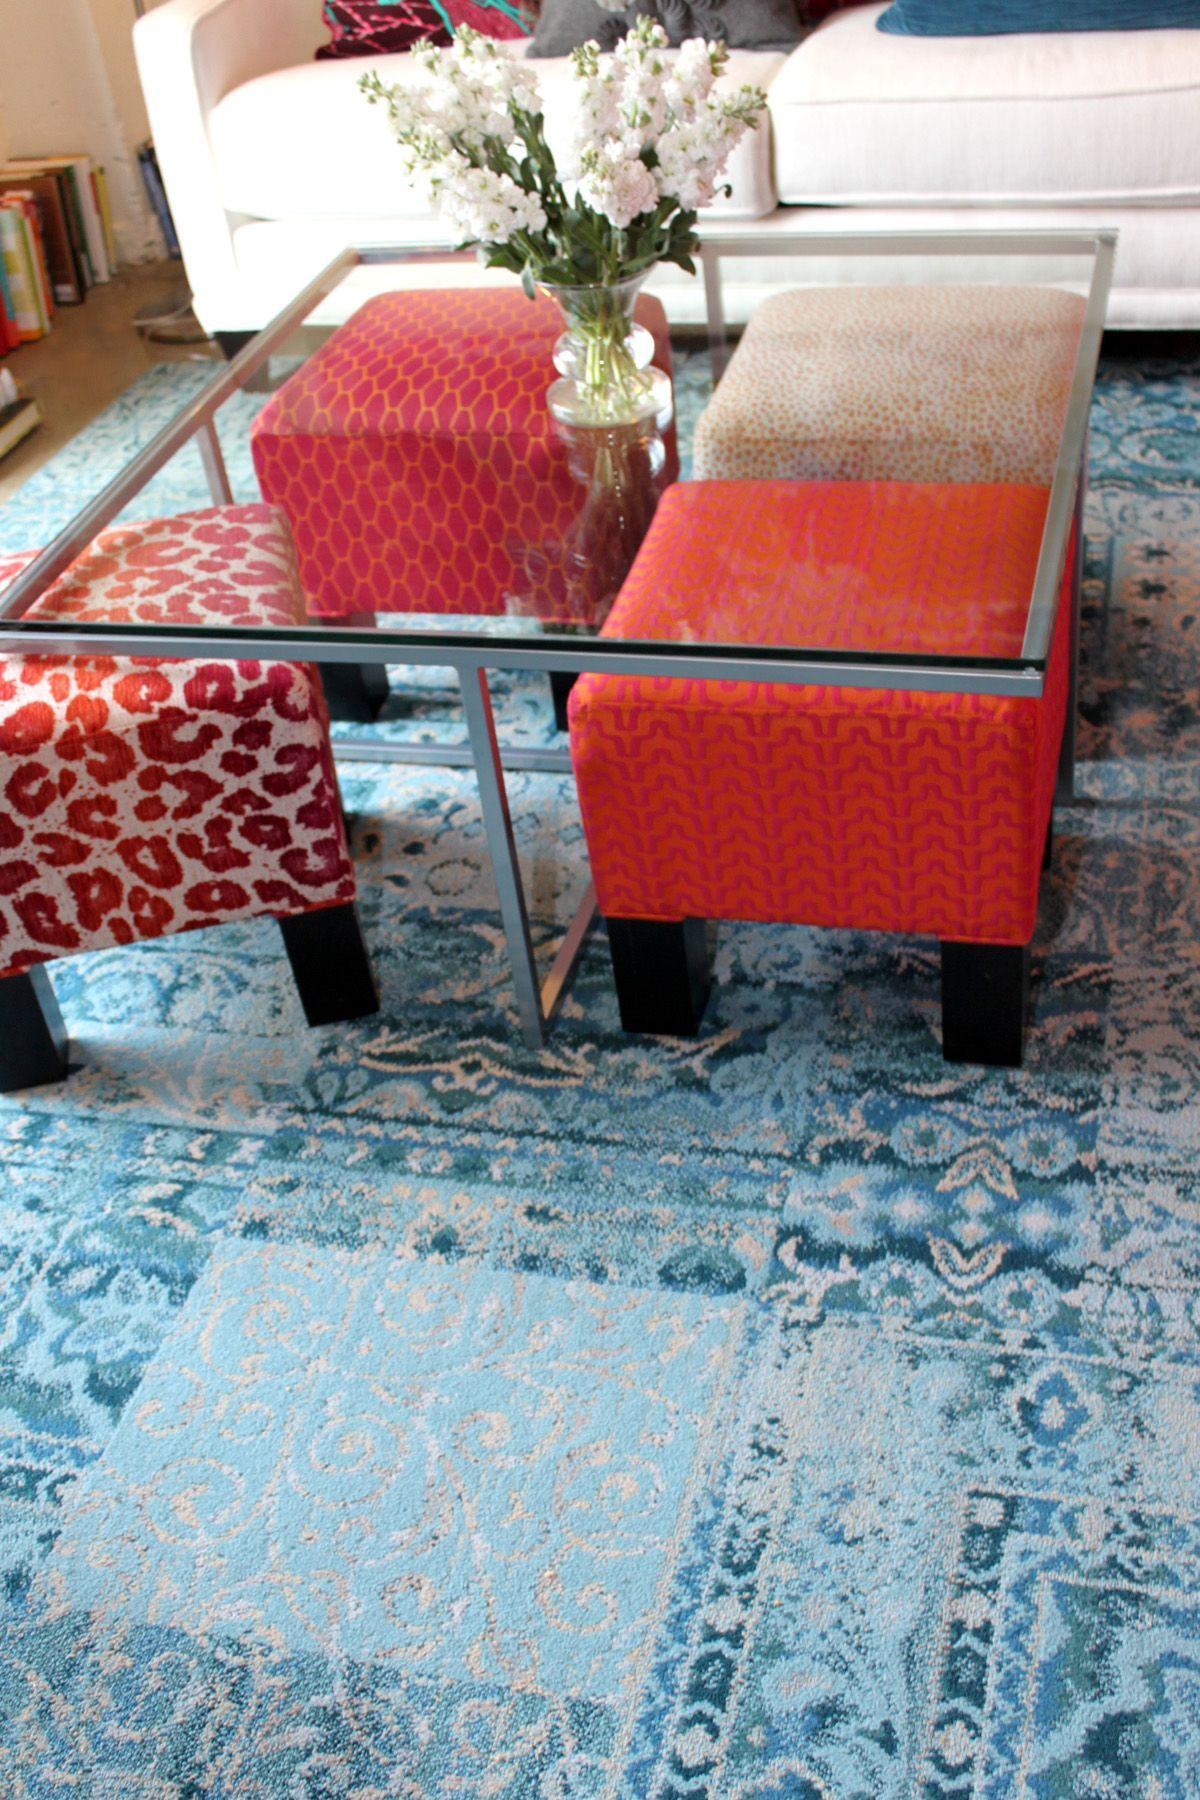 Colorful Ottomans Under A Clear Table When Not Being Used Great For A Small Space That